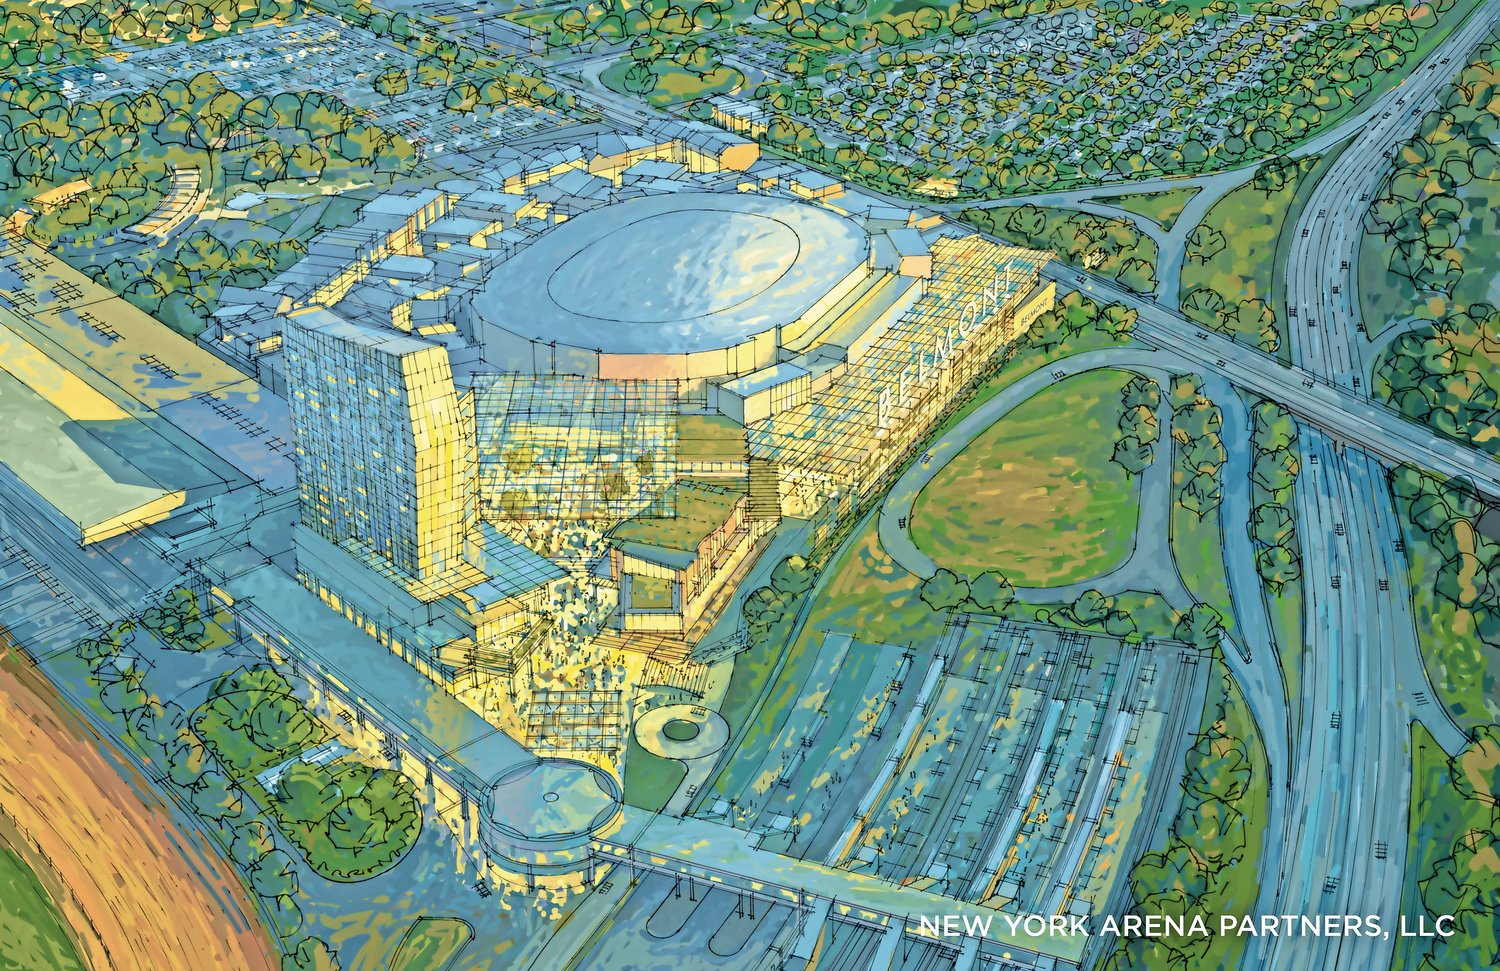 The Belmont Park project includes a 19,000-seat arena for the New York Islanders hockey team, a 250-room hotel, a community center, commercial office space and 350,000 square feet of retail space.